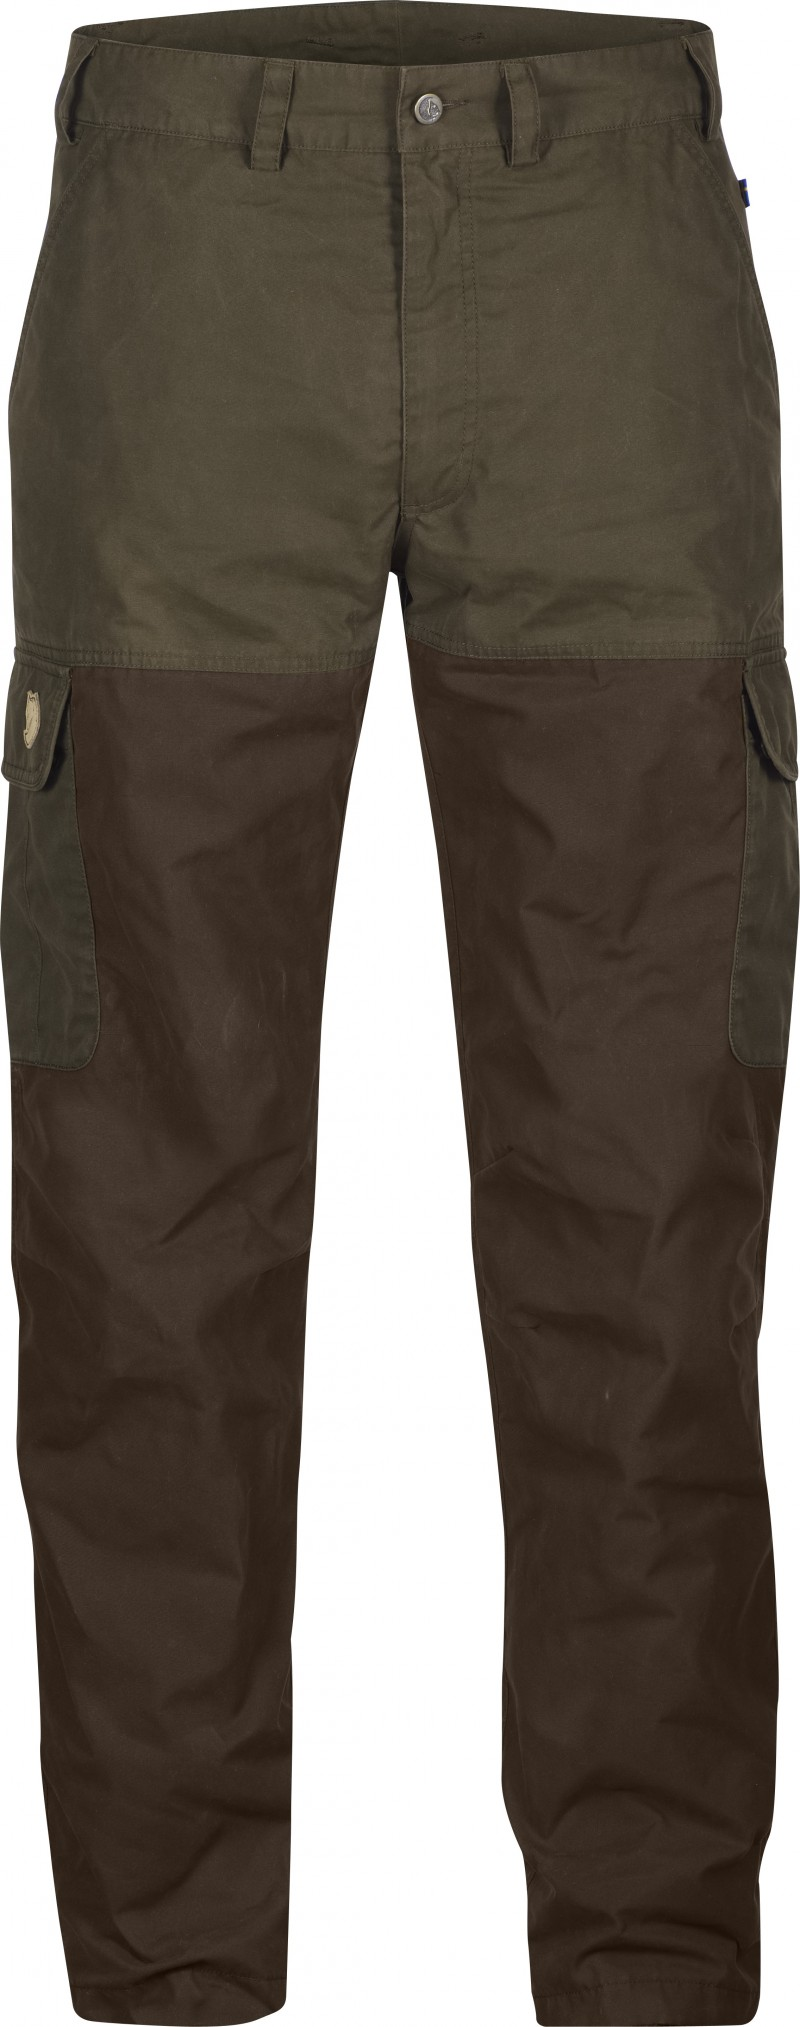 FjallRaven Brenner Trousers Brown-30